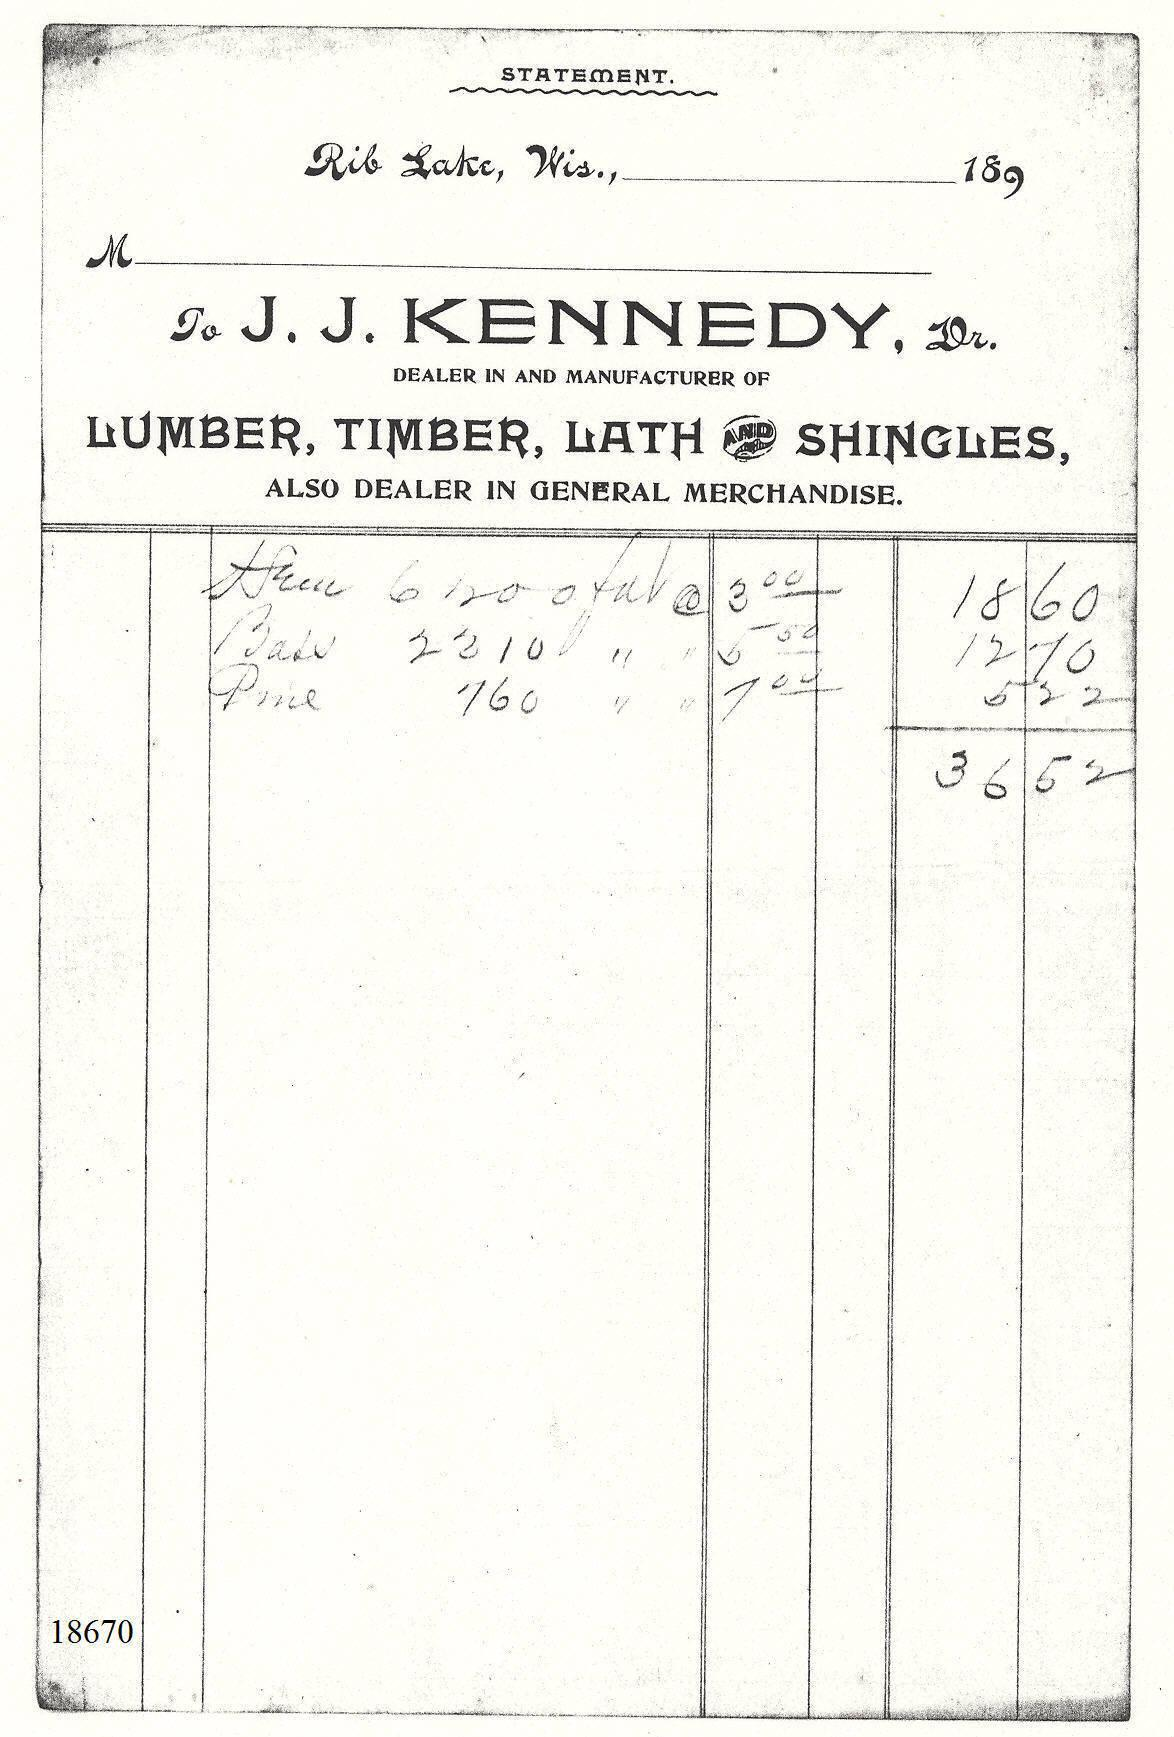 """C:\Users\Robert P. Rusch\Desktop\II. RLHSoc\Documents & Photos-Scanned\Rib Lake History 18600-18699\18670 Statement c. 1891 """"To J.J. Kennedy, Dr., Dealer in and manufacturer of Lumber.jpg"""